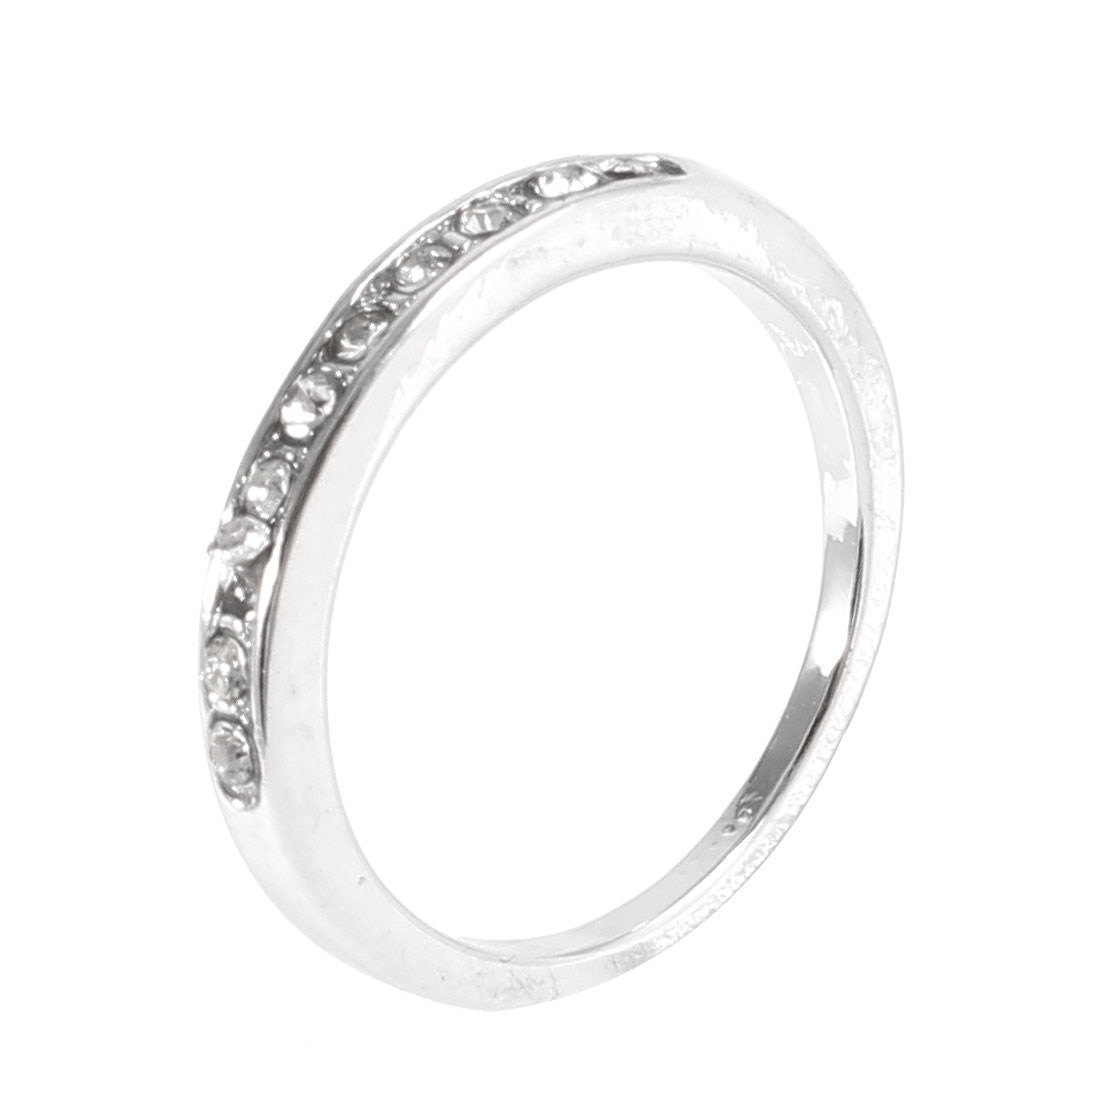 Silver Tone Metal Glitter Rhinestone Detailed Finger Ring Gift for Ladies